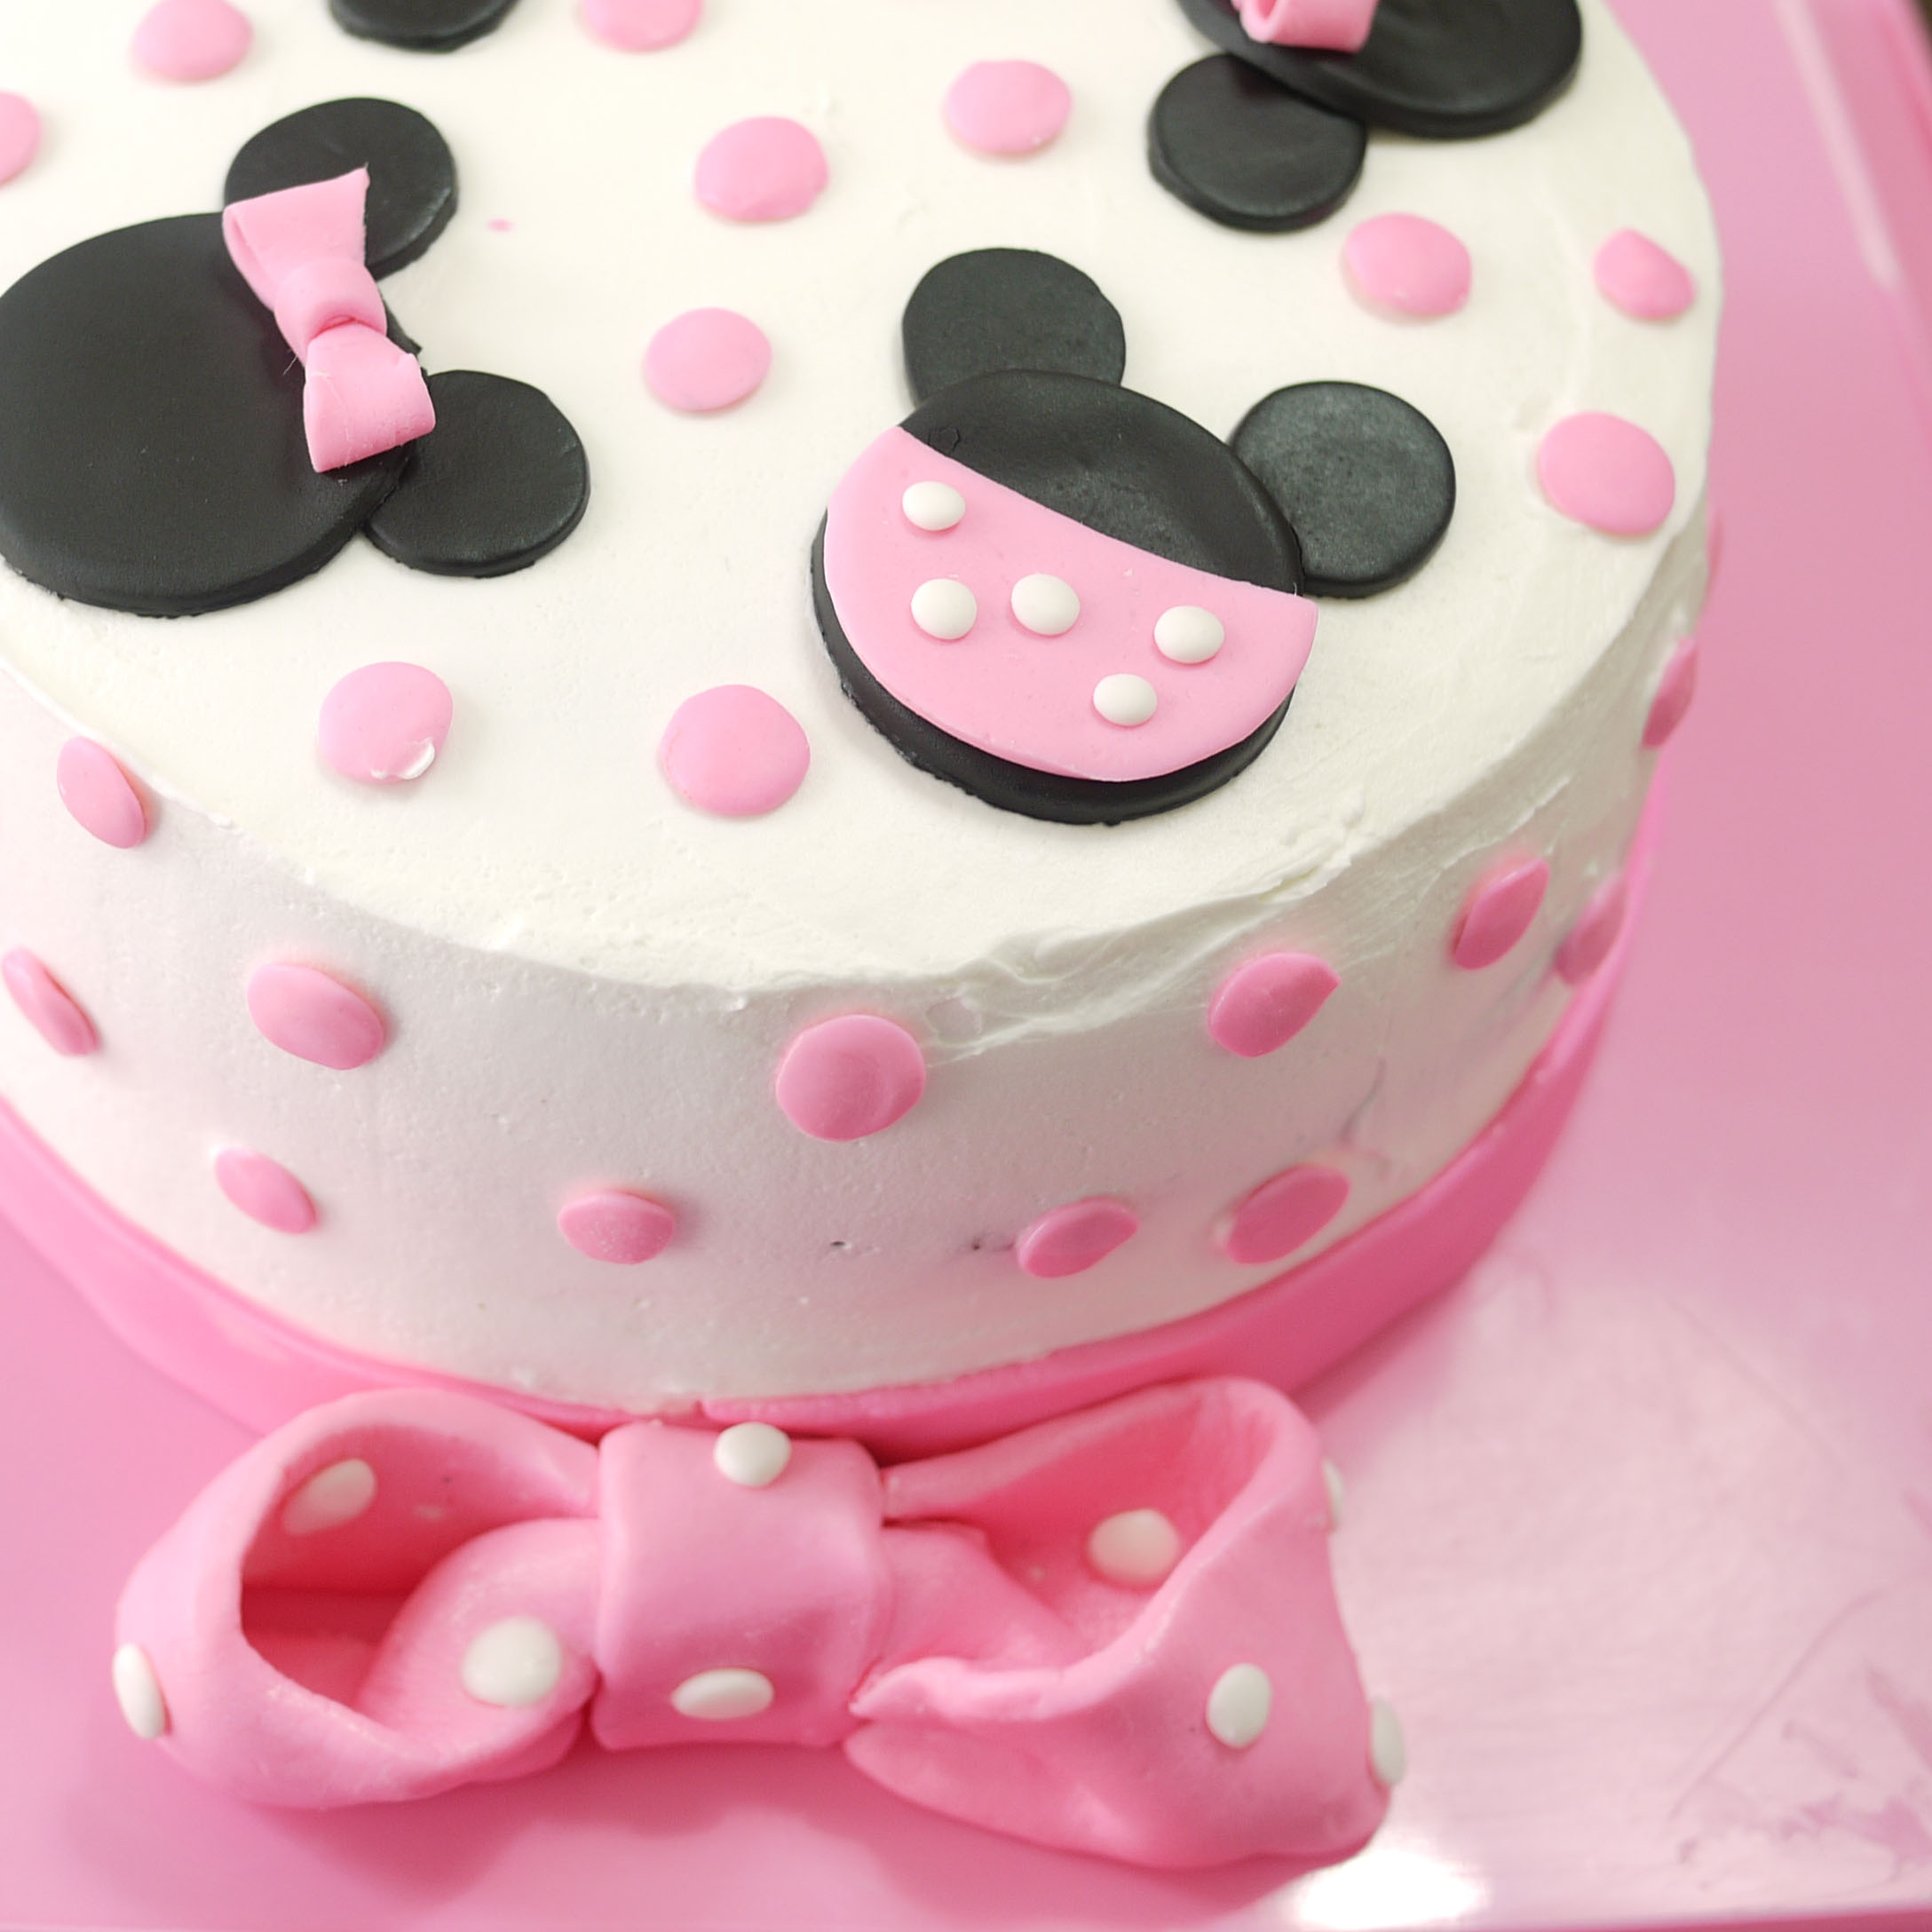 Minnie Mouse Images For Cake : Dessert Crustabakes Page 3